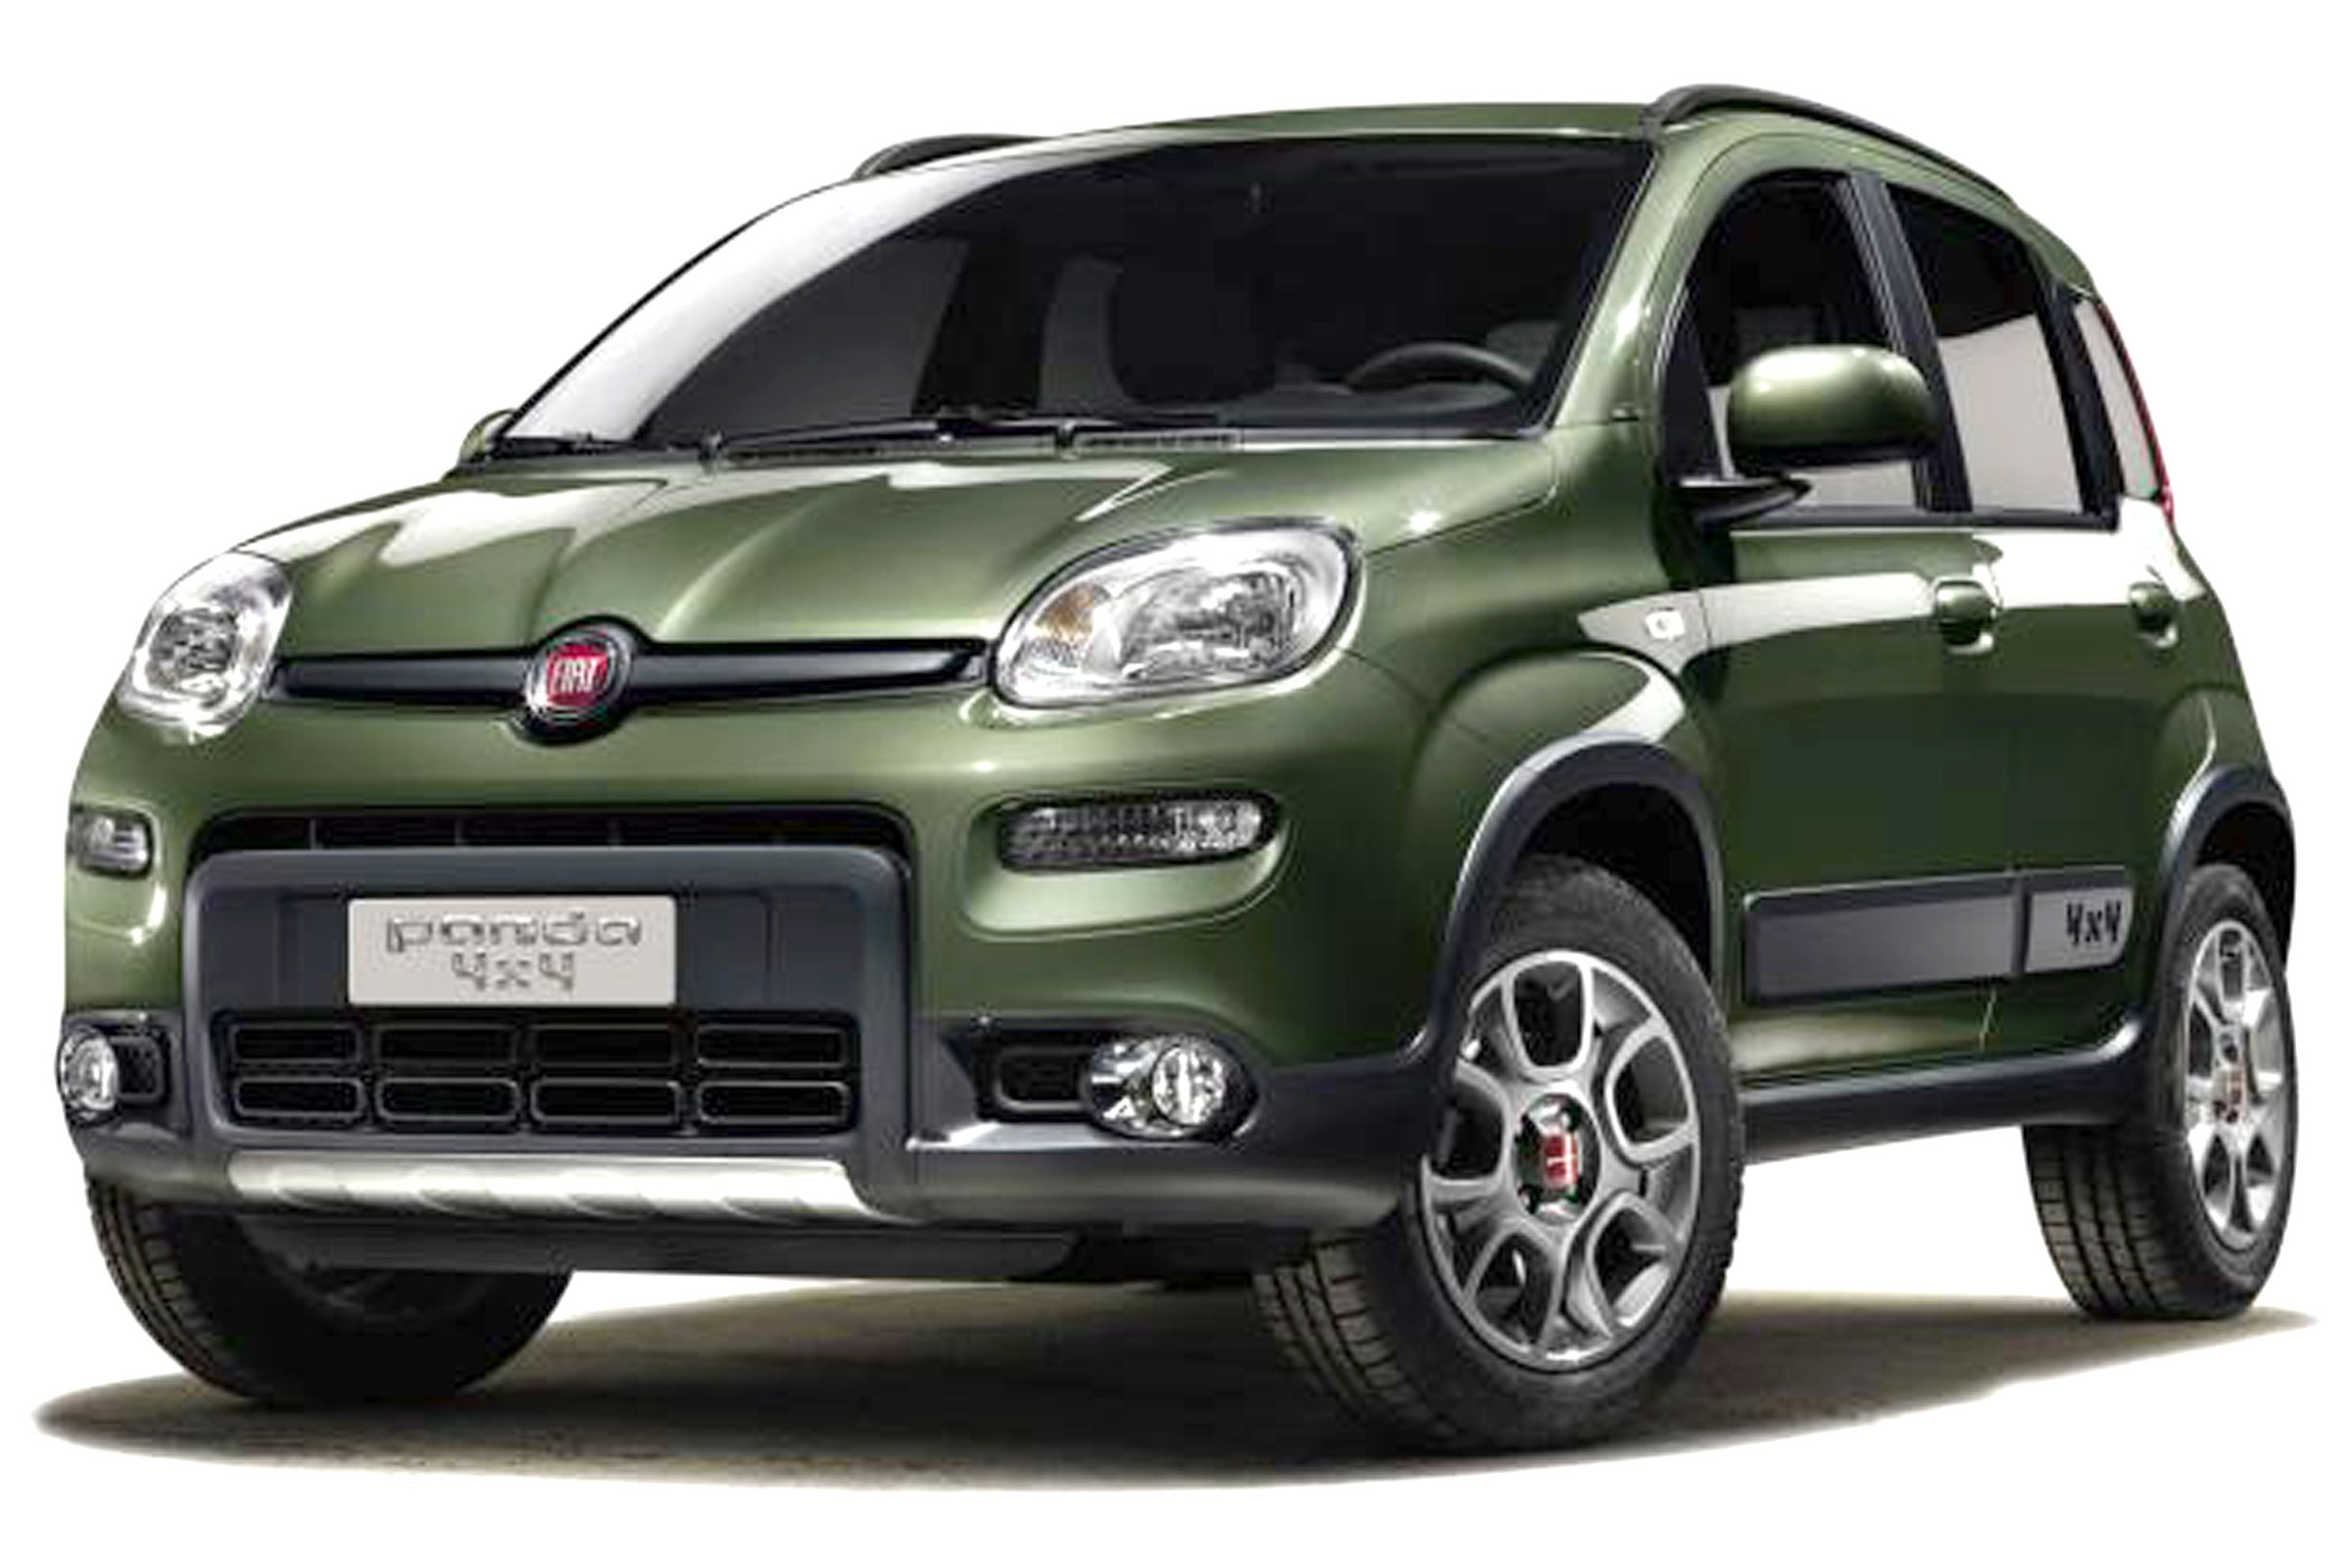 Fiat Panda 4x4 Hatchback 2020 Review Carbuyer